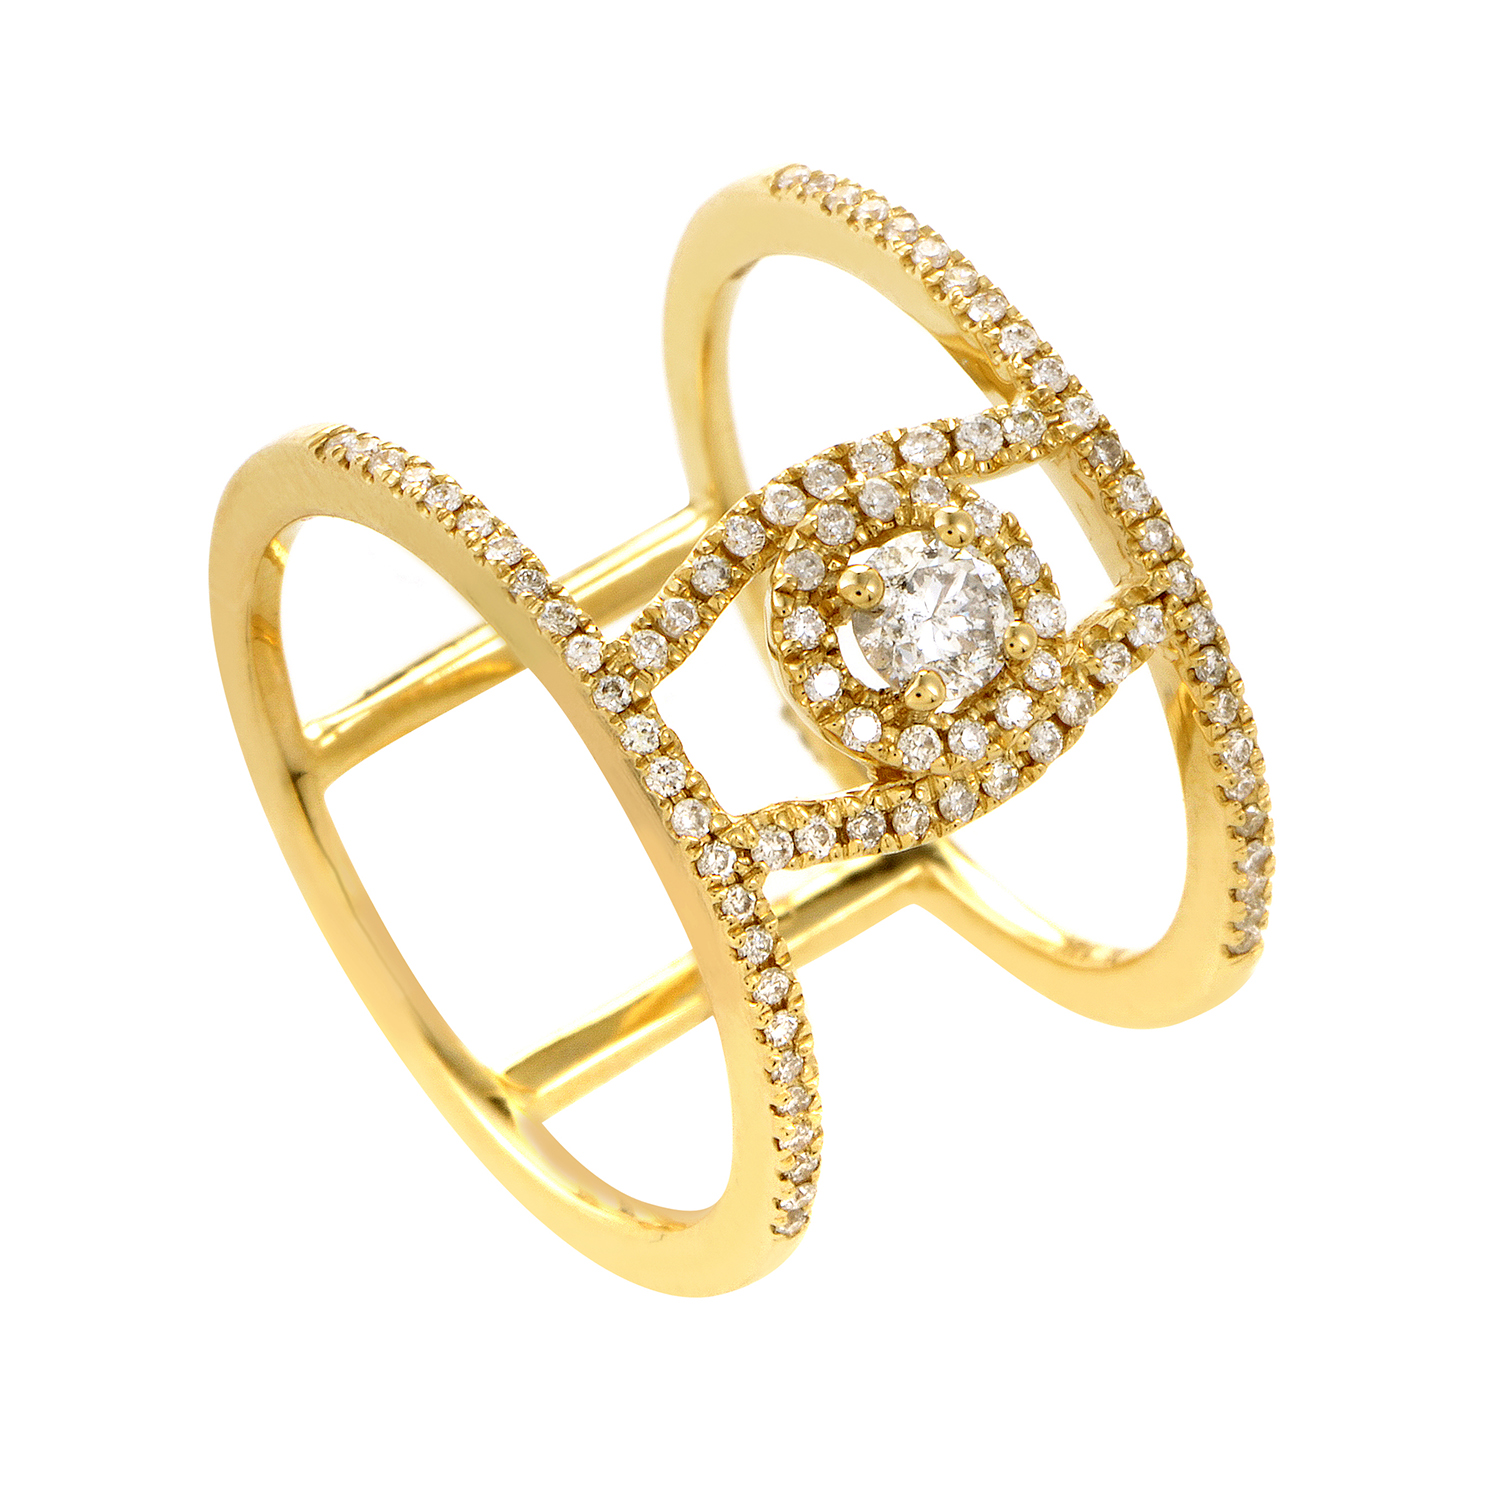 14K Yellow Gold Diamond Pave Ring RD4-10247Y